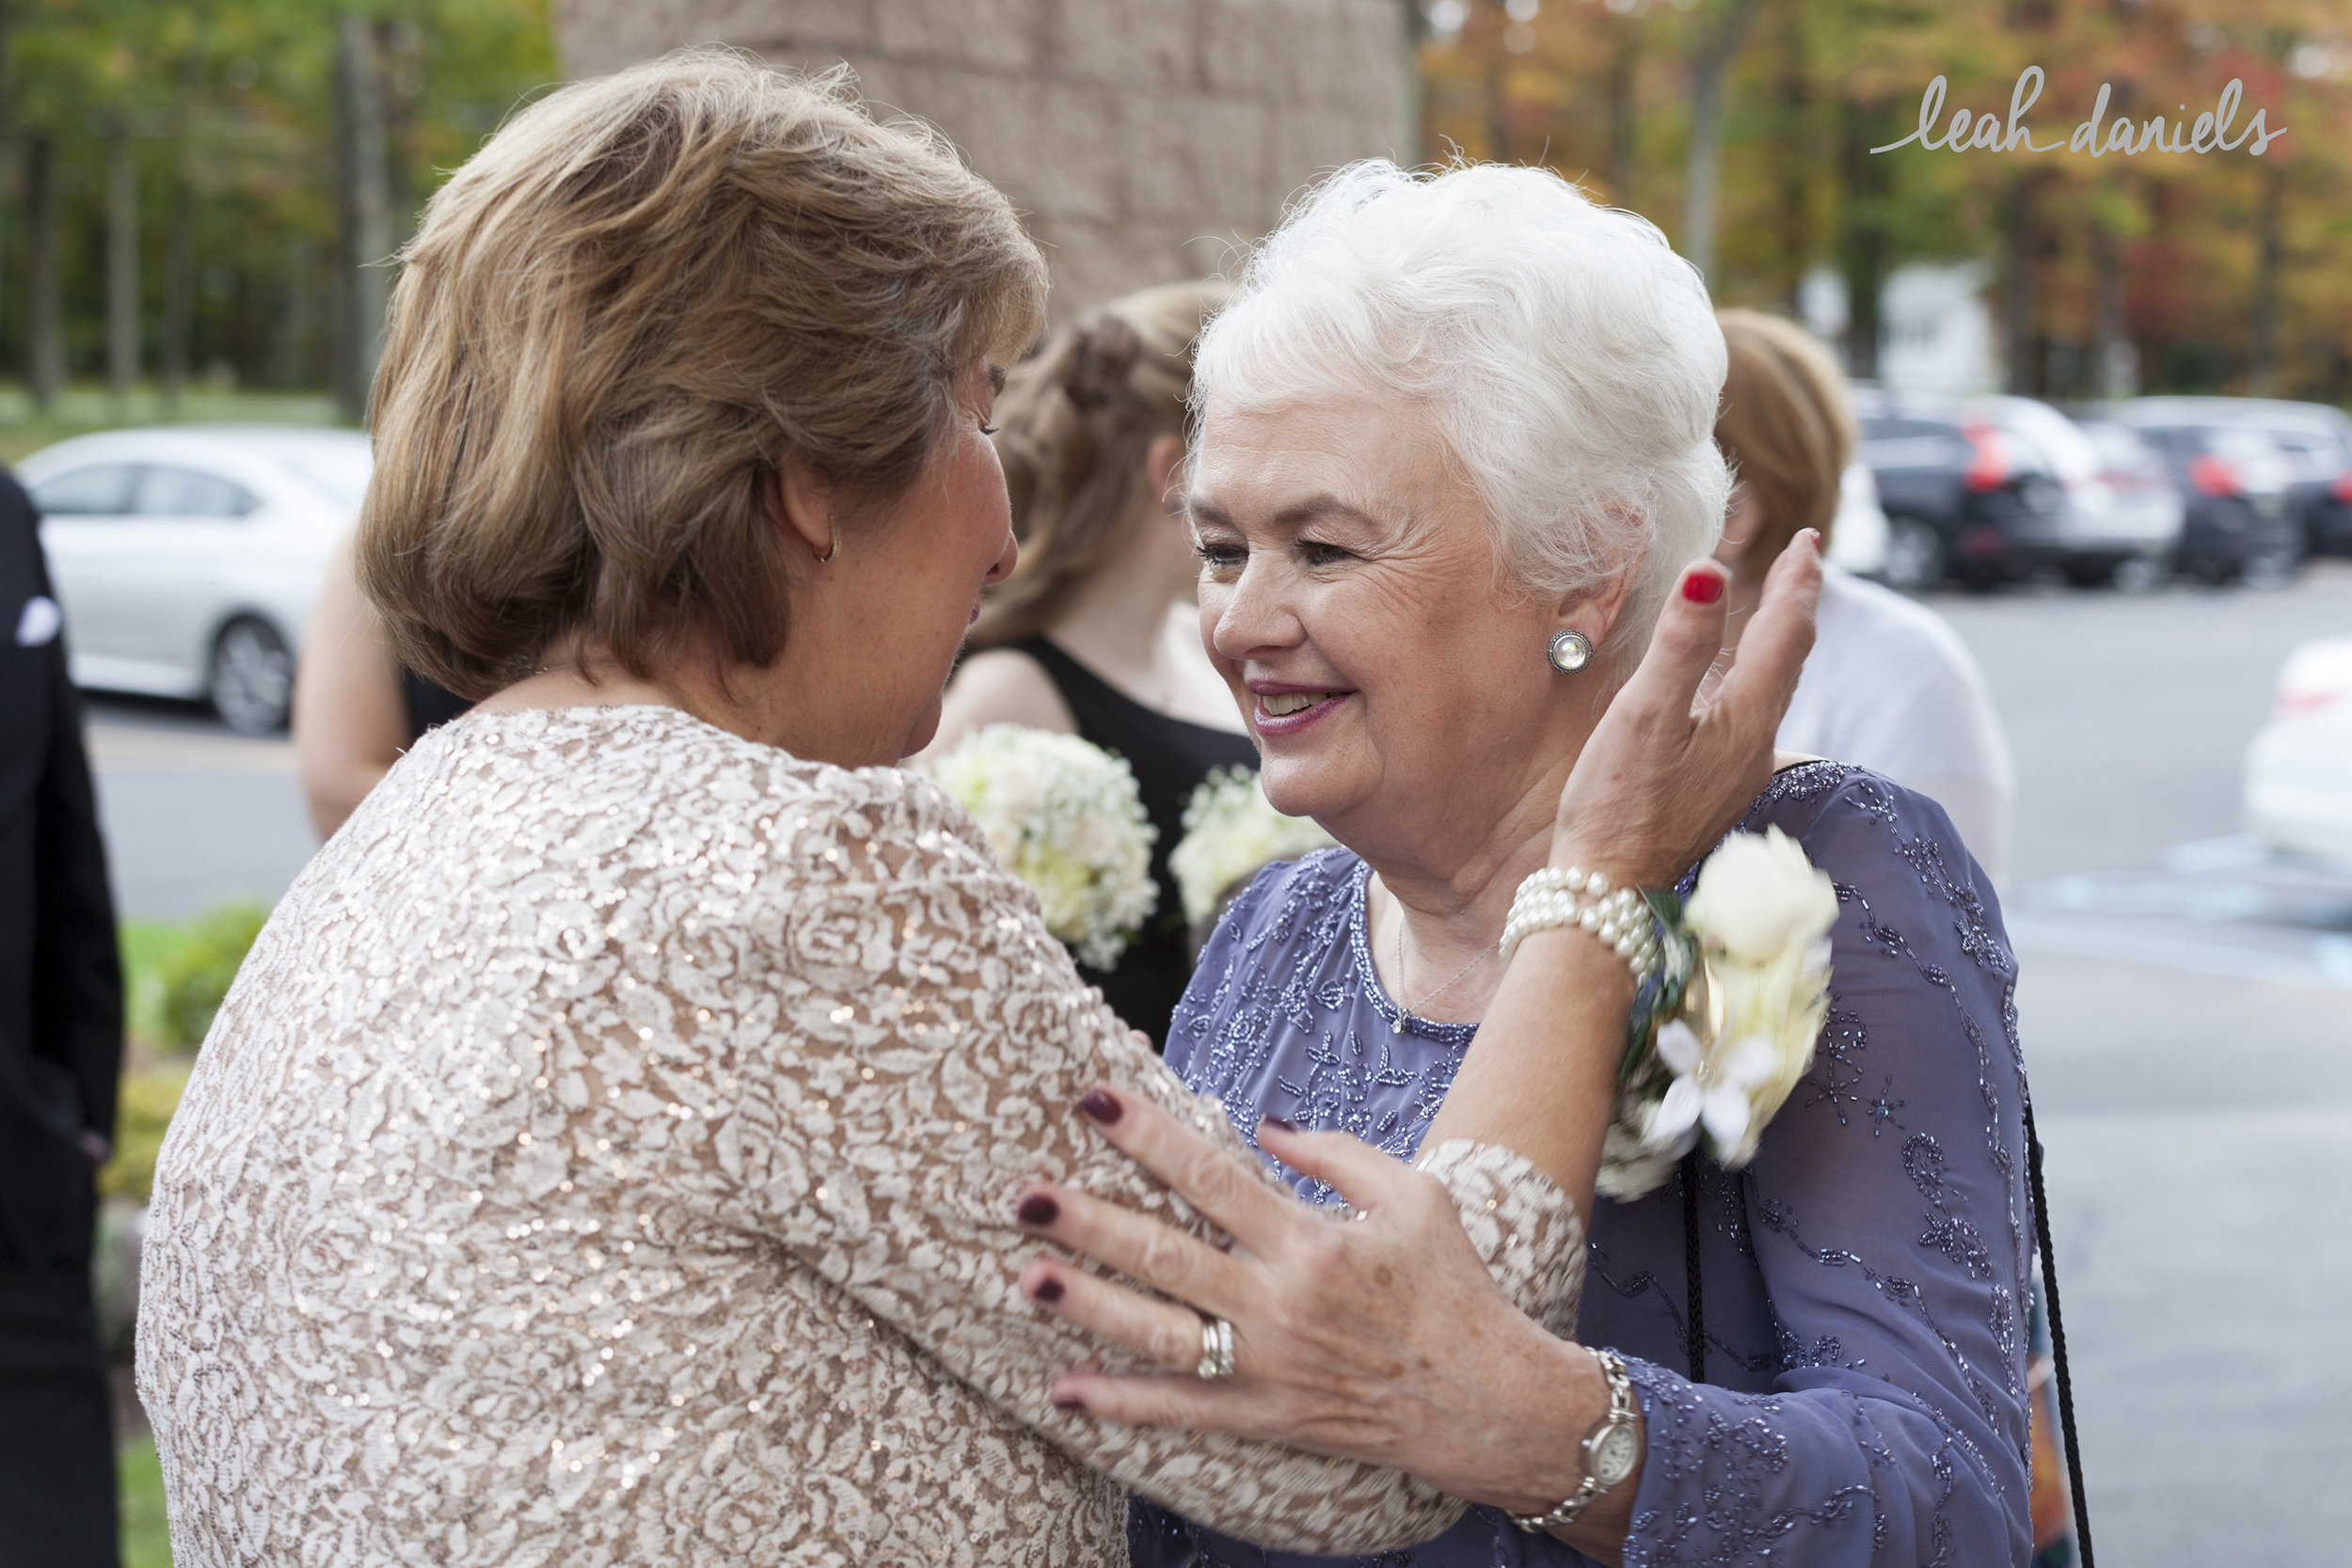 An absolutely beautiful moment between the Bride and Groom's Mothers <3